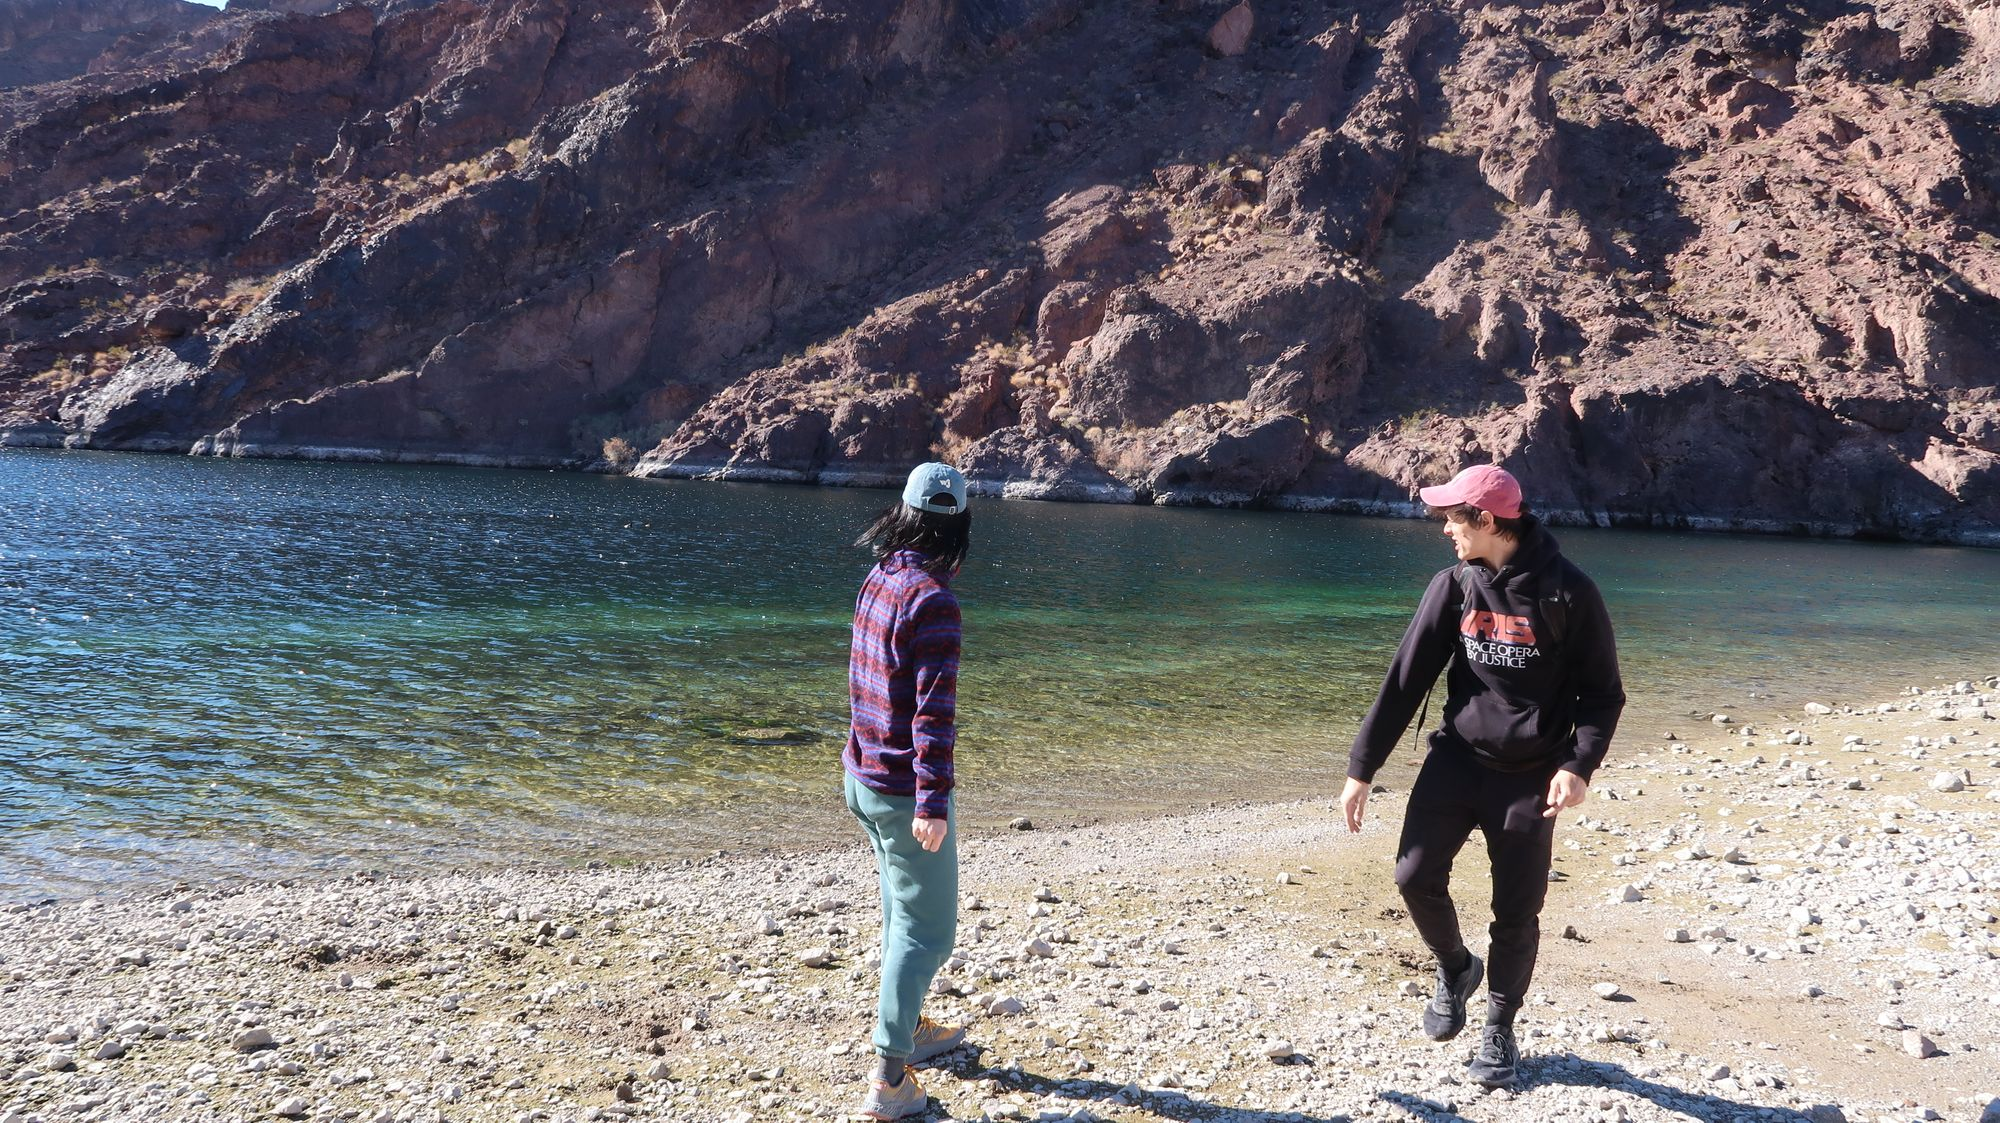 Ian and lacy skipping stones along the Colorado River